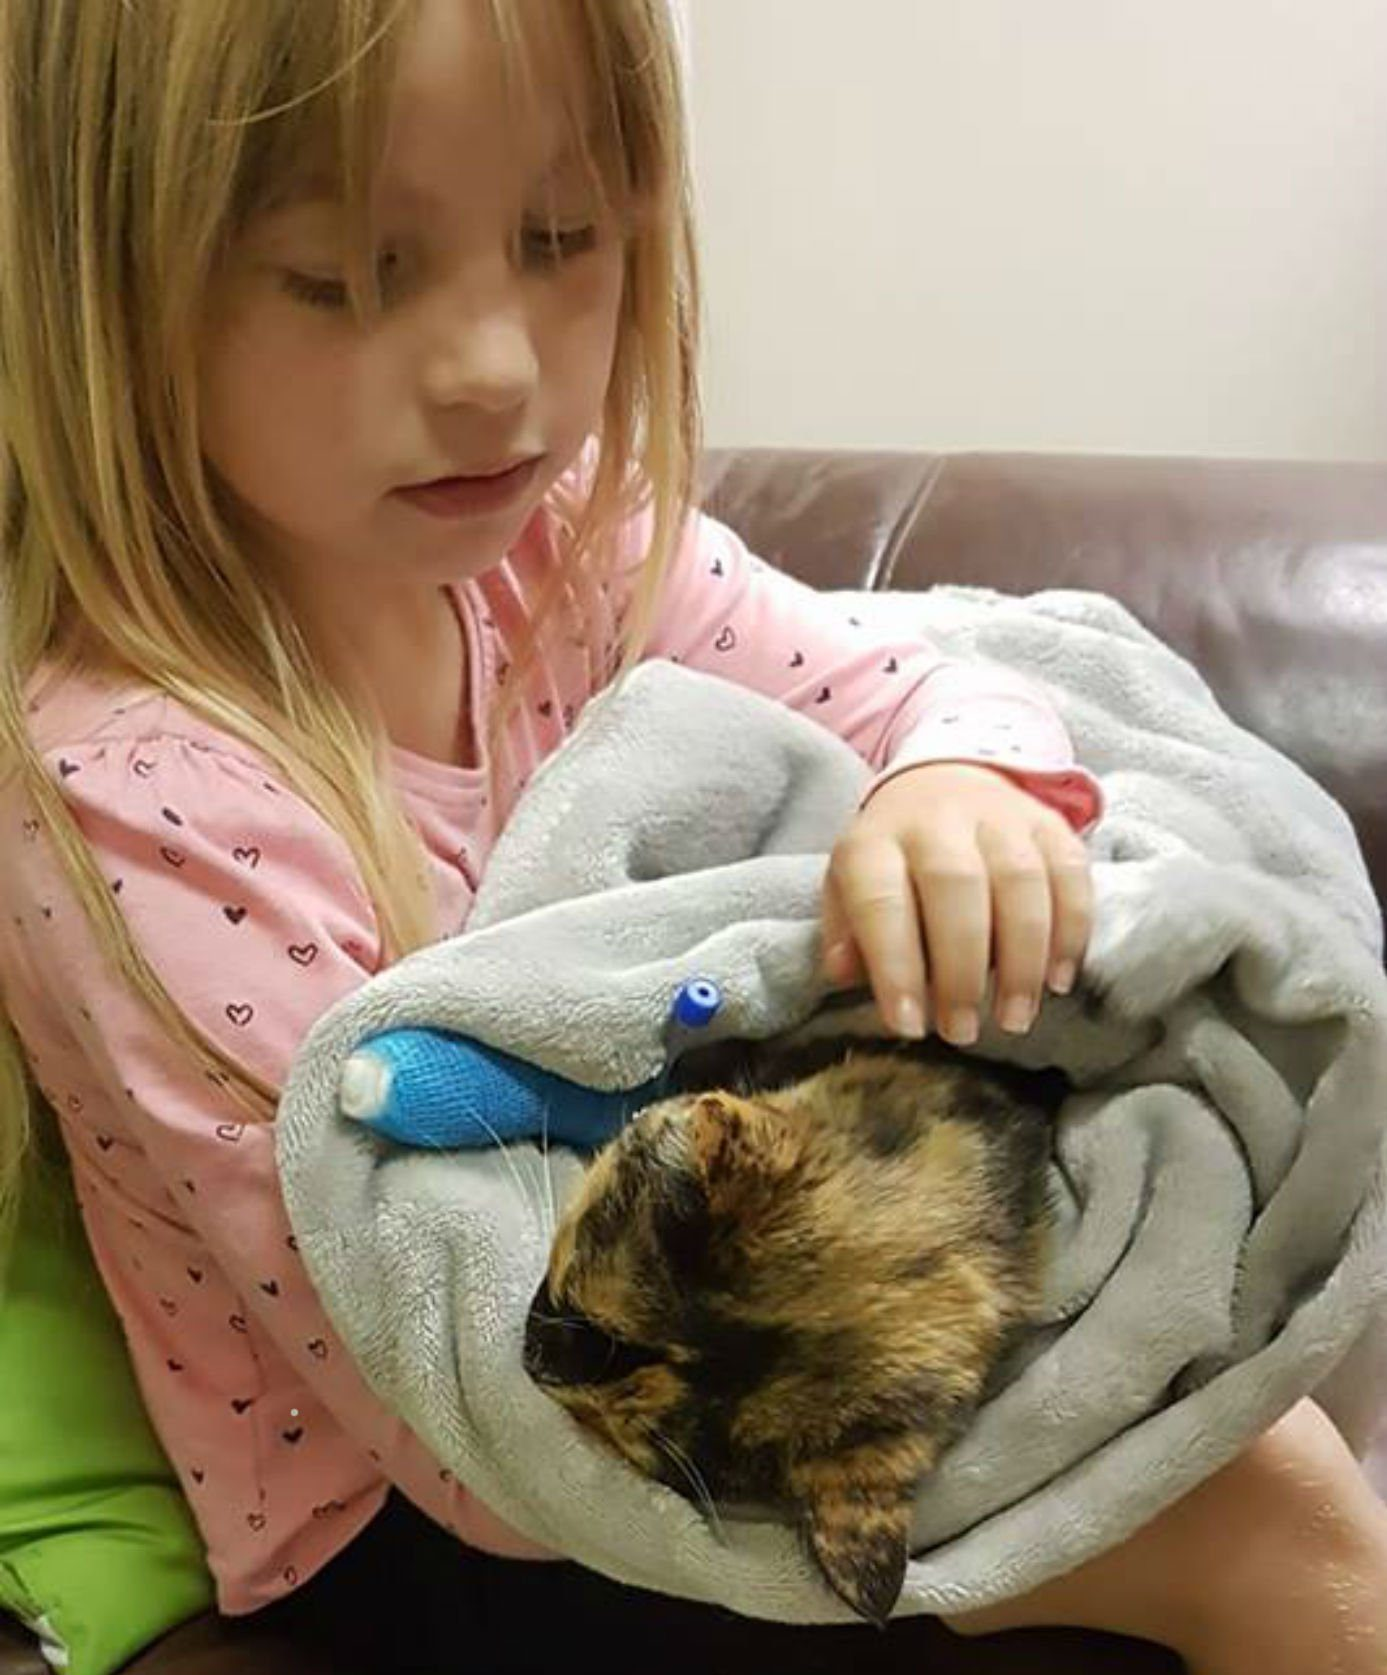 "Maddison cradling Millie half an hour before she had to be put down A SCOTS mum has posted a heart-rending photo of her daughter cuddling her dying cat to capture the ""evil scum"" who poisoned it with antifreeze. Madison Waddell, from Camelon, Falkirk, was pictured cradling her poorly moggy wrapped up in a blanket half an hour before she had to be put down. Millie, a Tortoiseshell cat, was found looking unwell by her owners after they returned from holiday and was rushed to the vet on Sunday evening. Vets explained to the family that Millie, only five-years-old, had antifreeze poisoning and that she only had a 10% chance of survival. Madison, seven-years-old, and Millie had been best friends for almost half of the youngsters life. So Madison was devastated when Millie had to be put down on Monday after treatment for antifreeze poisoning didn't work."